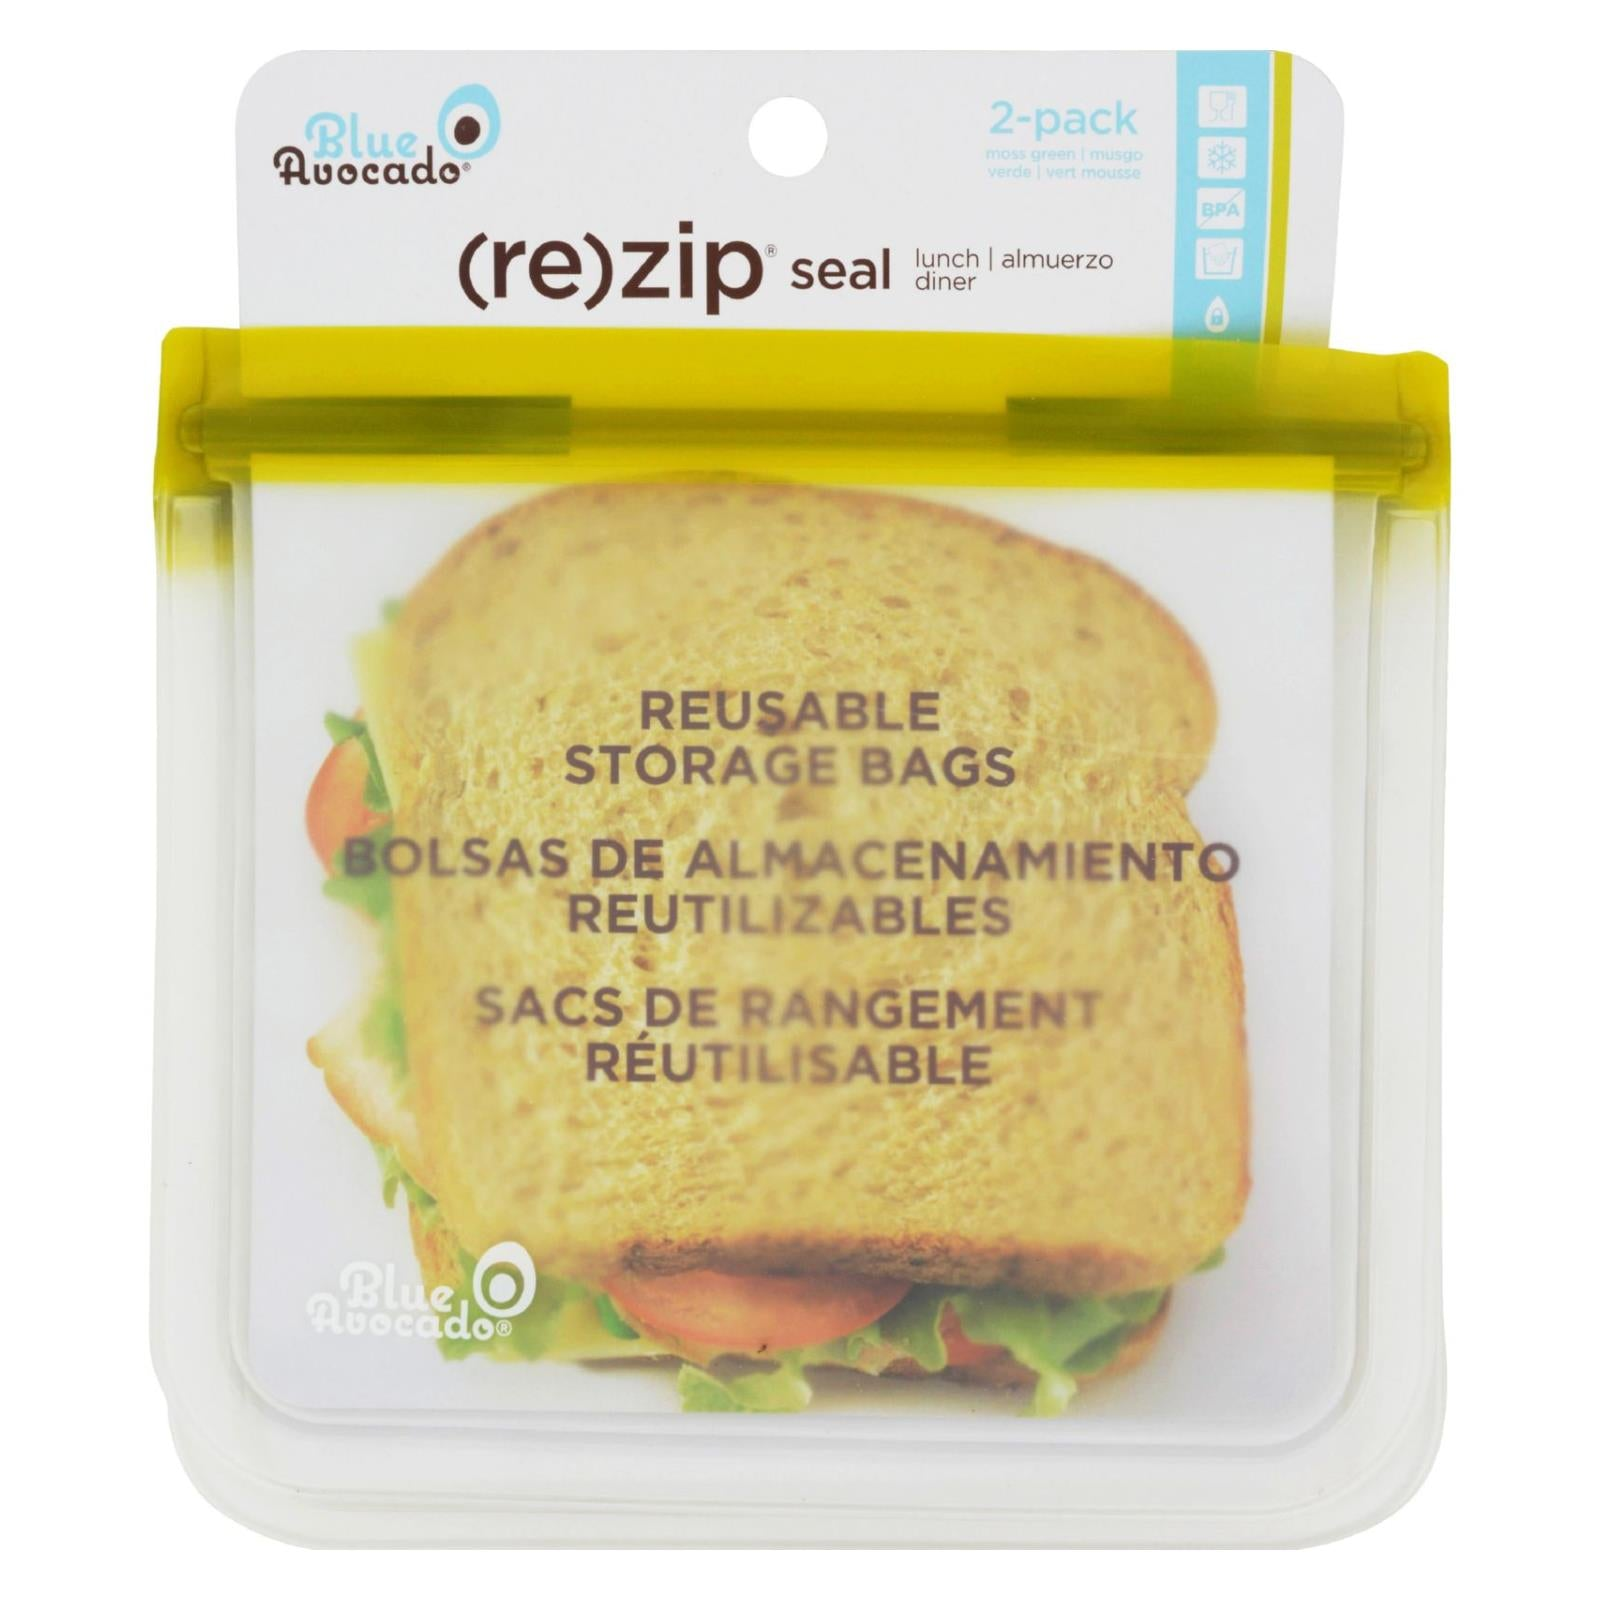 Buy Blue Avocado Lunch Bag - Re-Zip Seal - Green - 2 Pack - Reusable Bags from Veroeco.com